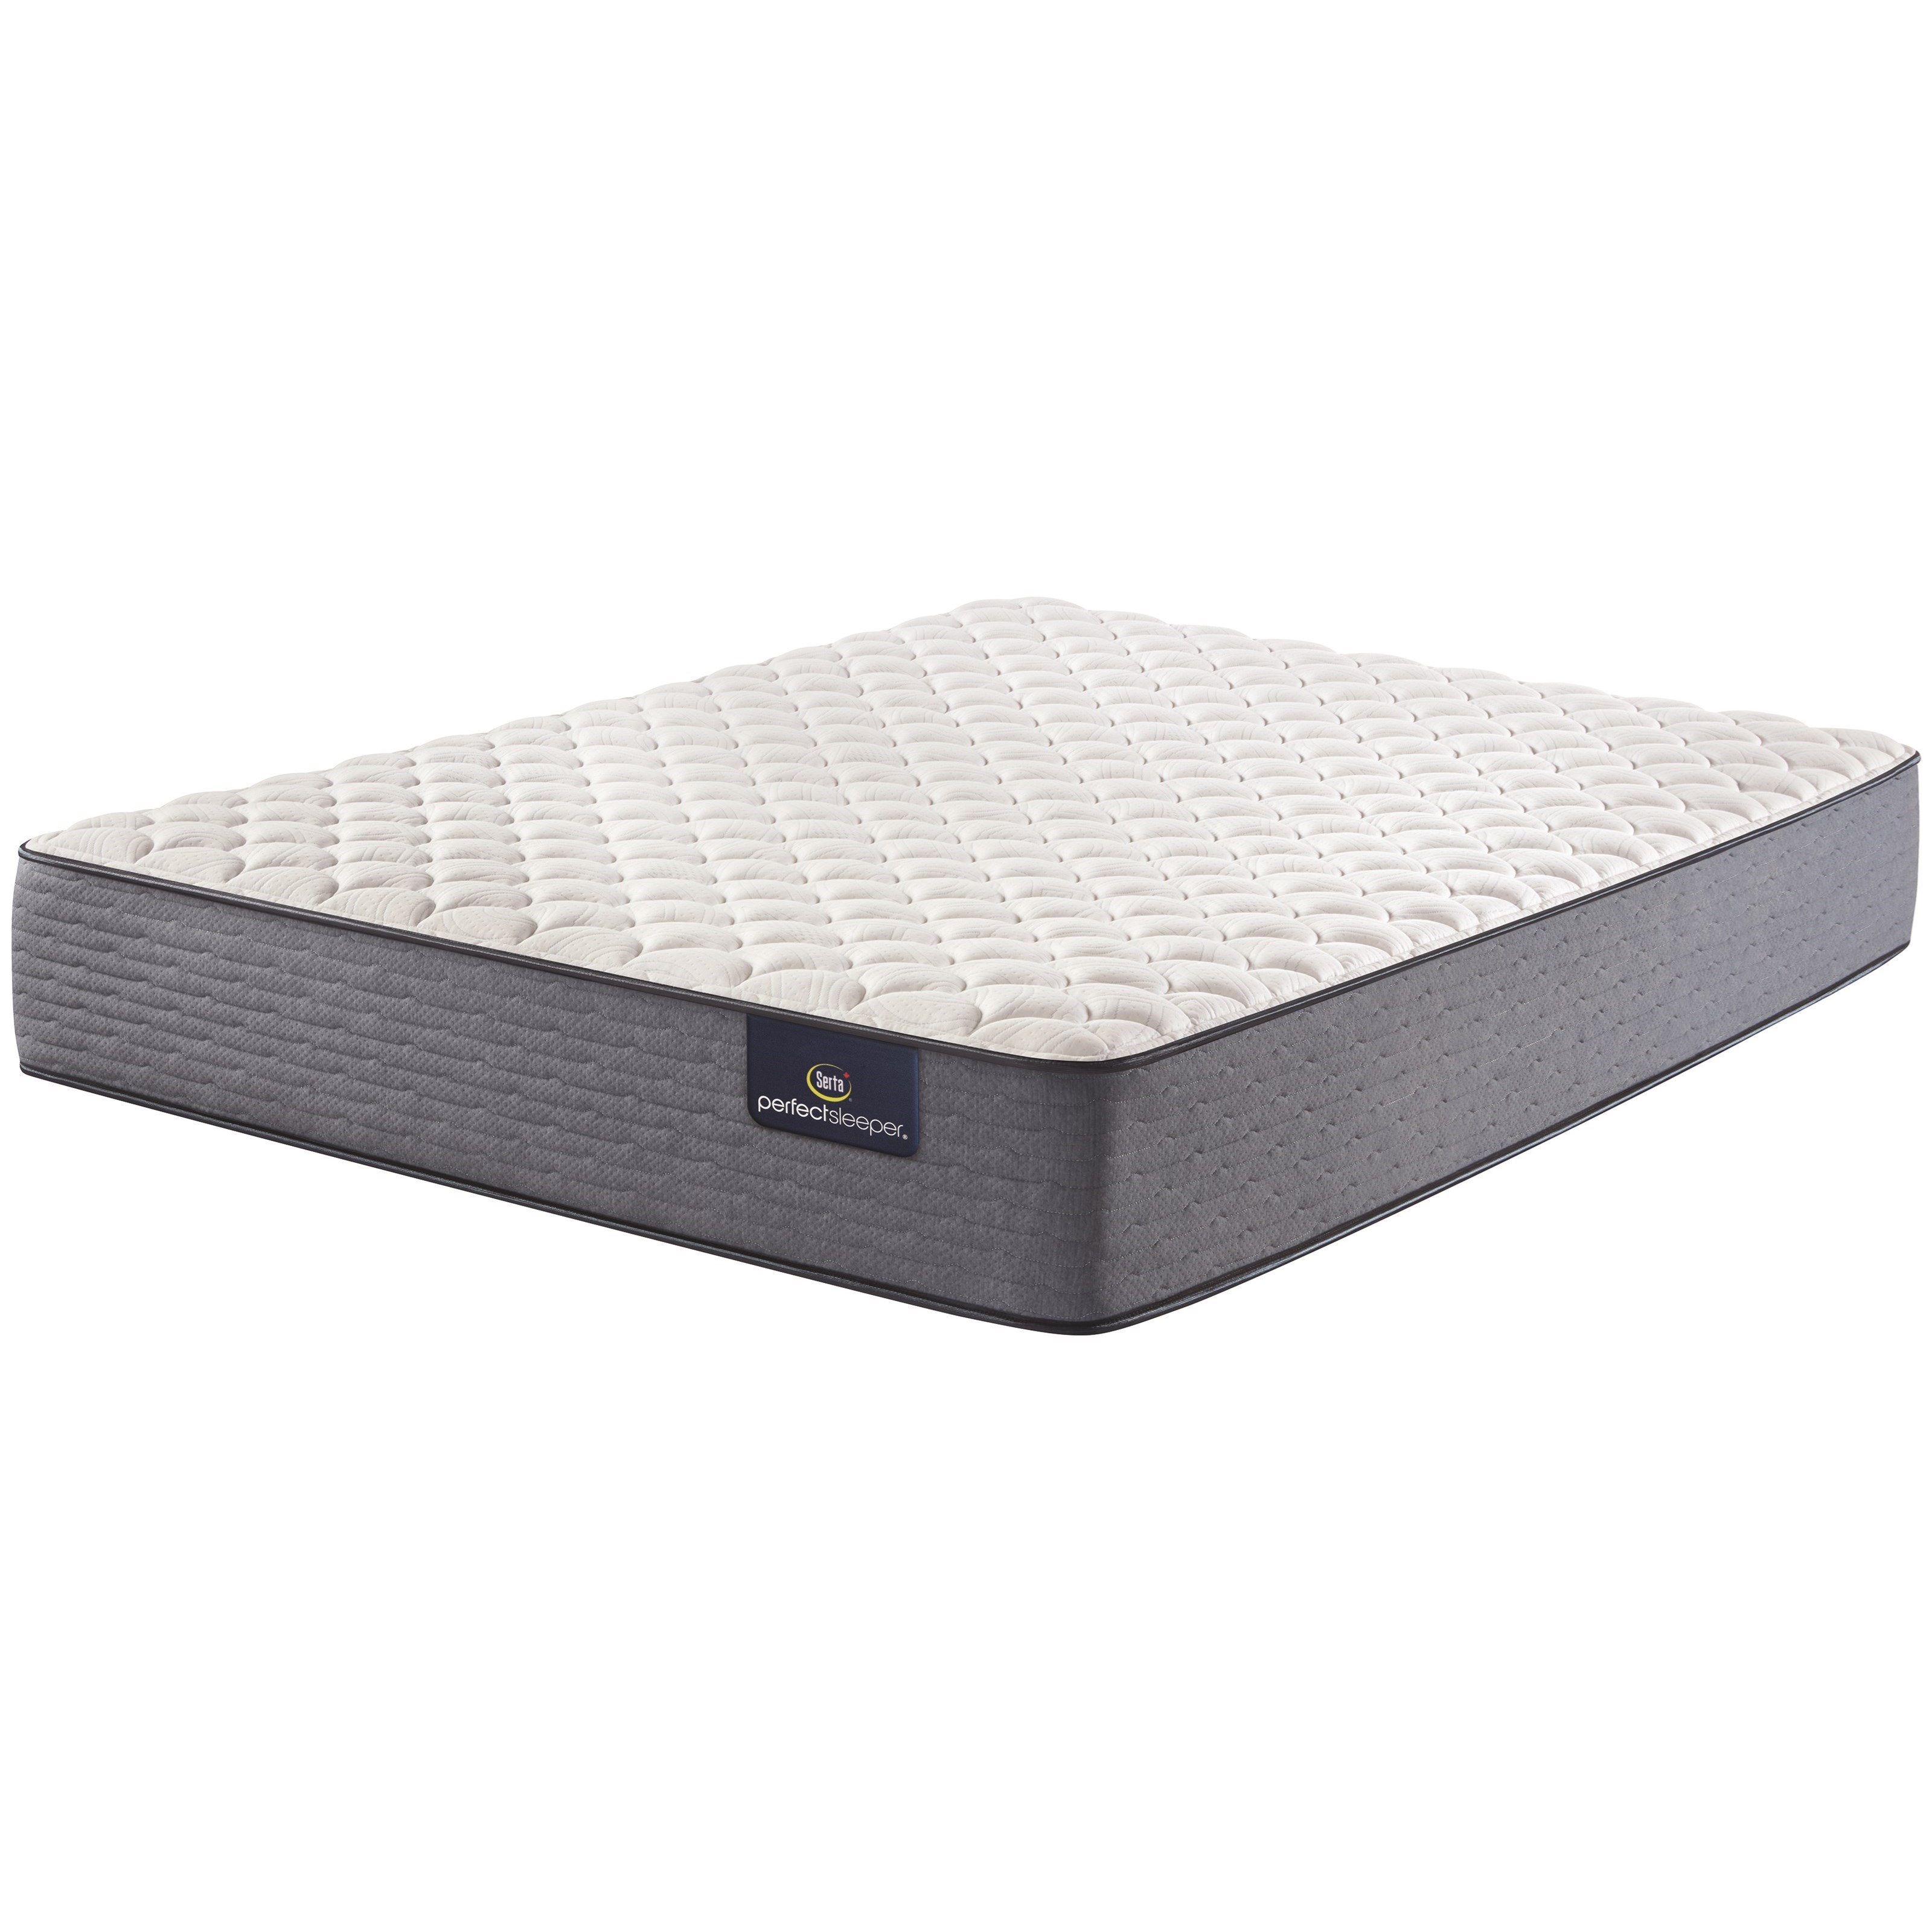 """2021 Perfect Sleeper Escape Firm King 12"""" Firm Mattress by Serta Canada at Stoney Creek Furniture"""